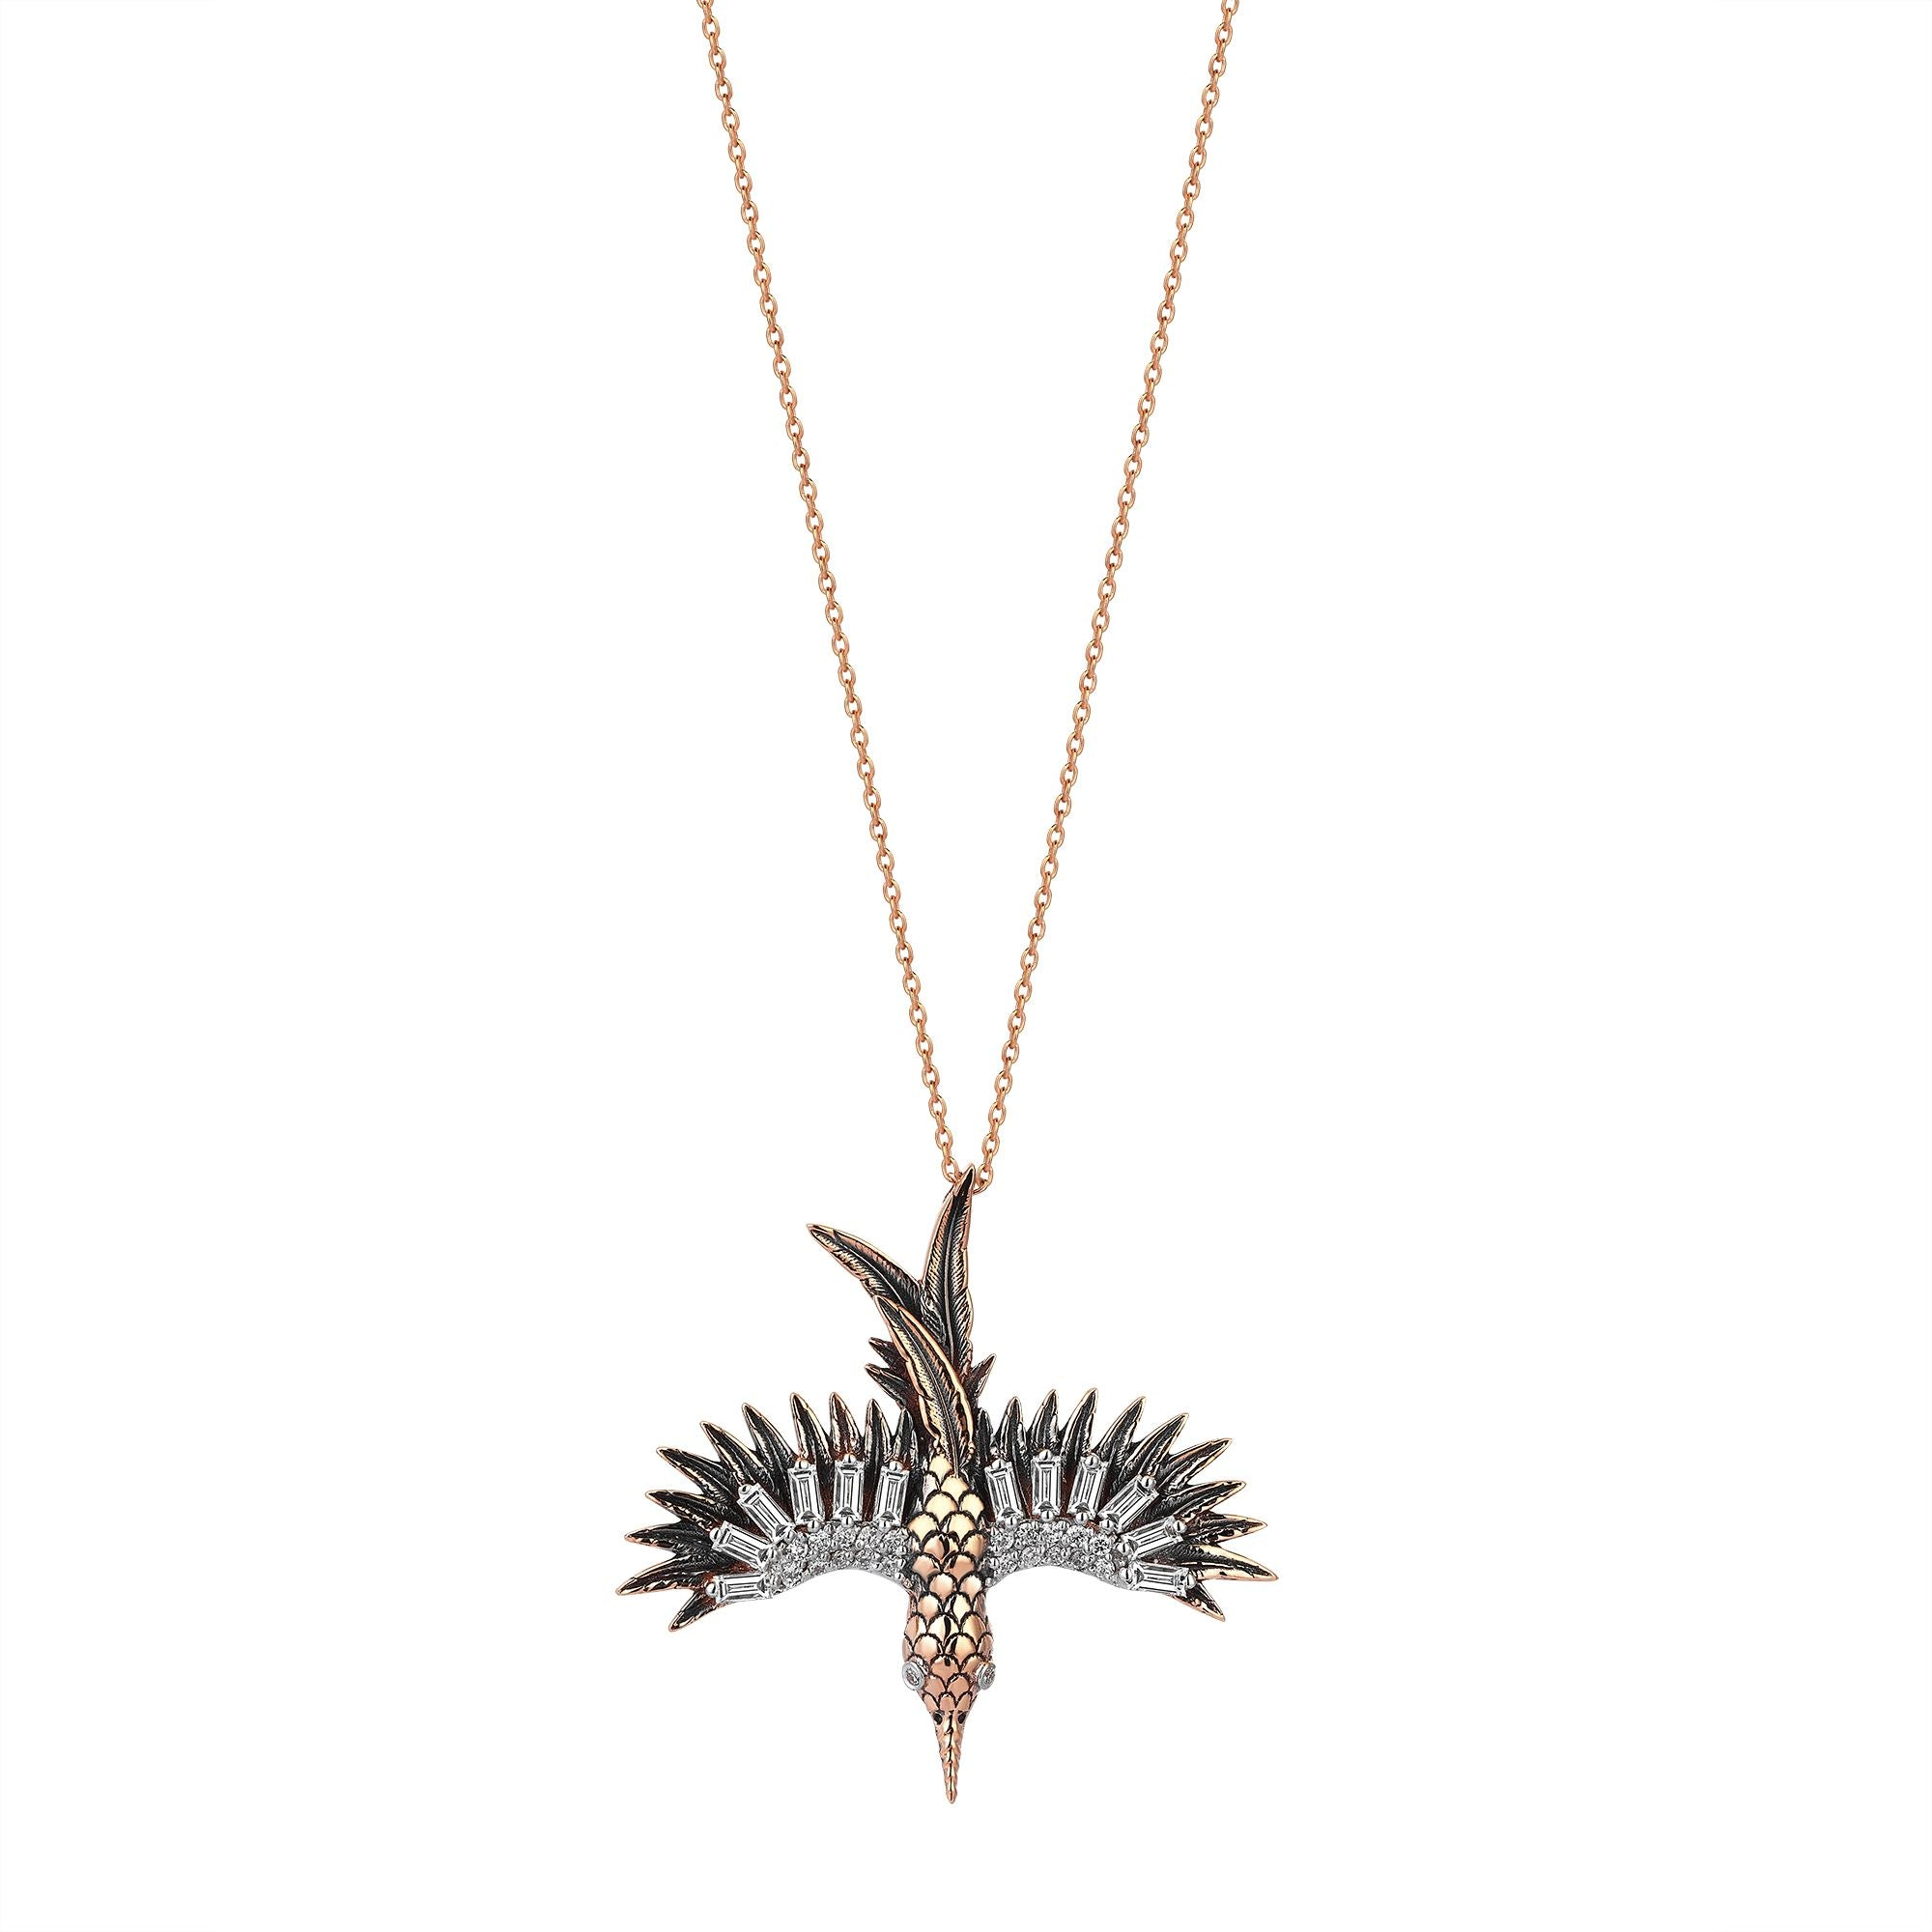 Baguette Diamond Encrusted Phoenix Necklace - Kismet by Milka - Necklaces | Broken English Jewelry